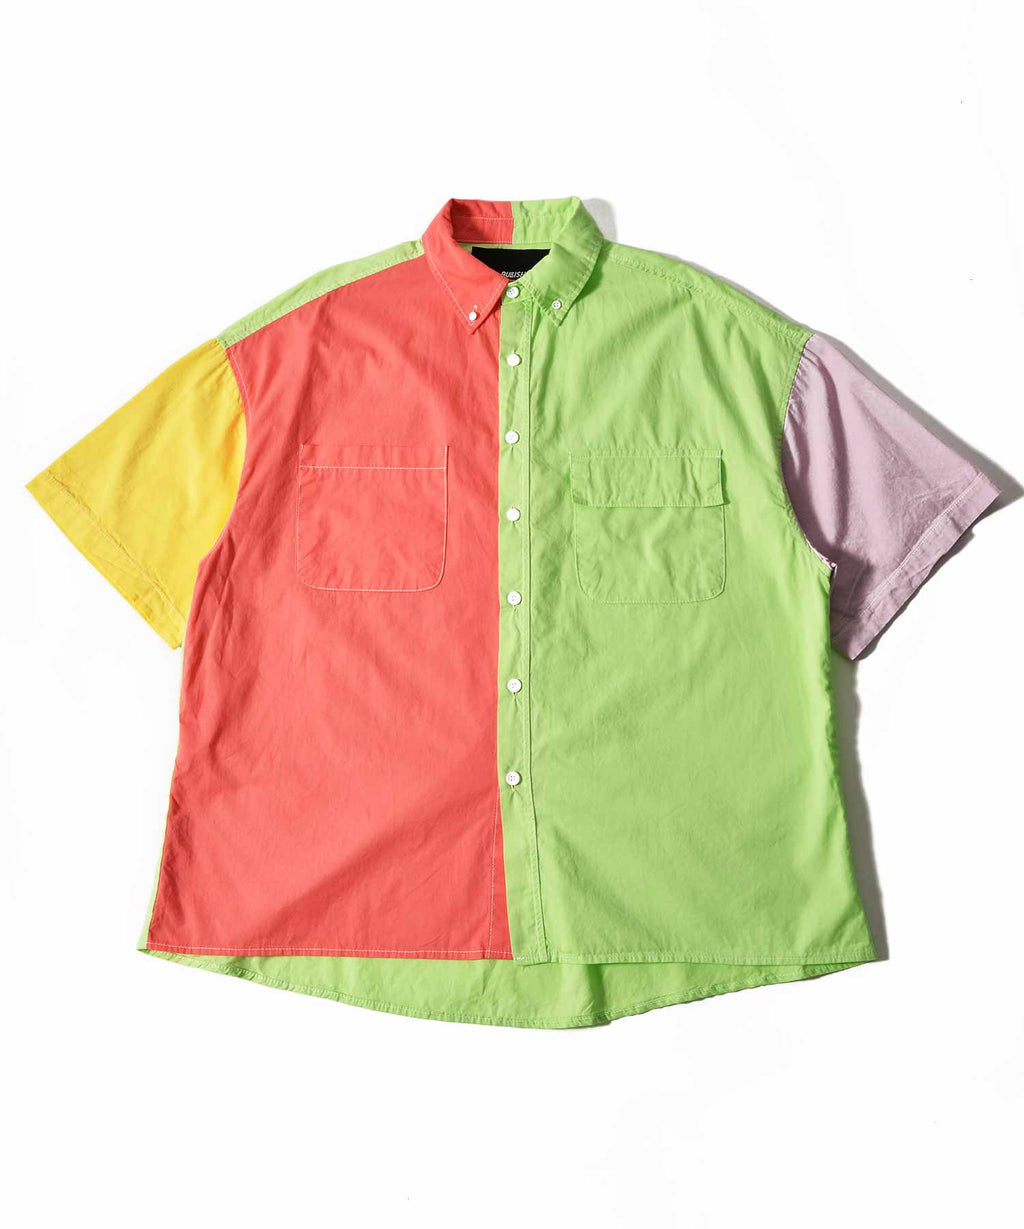 color switching short sleeve shirt